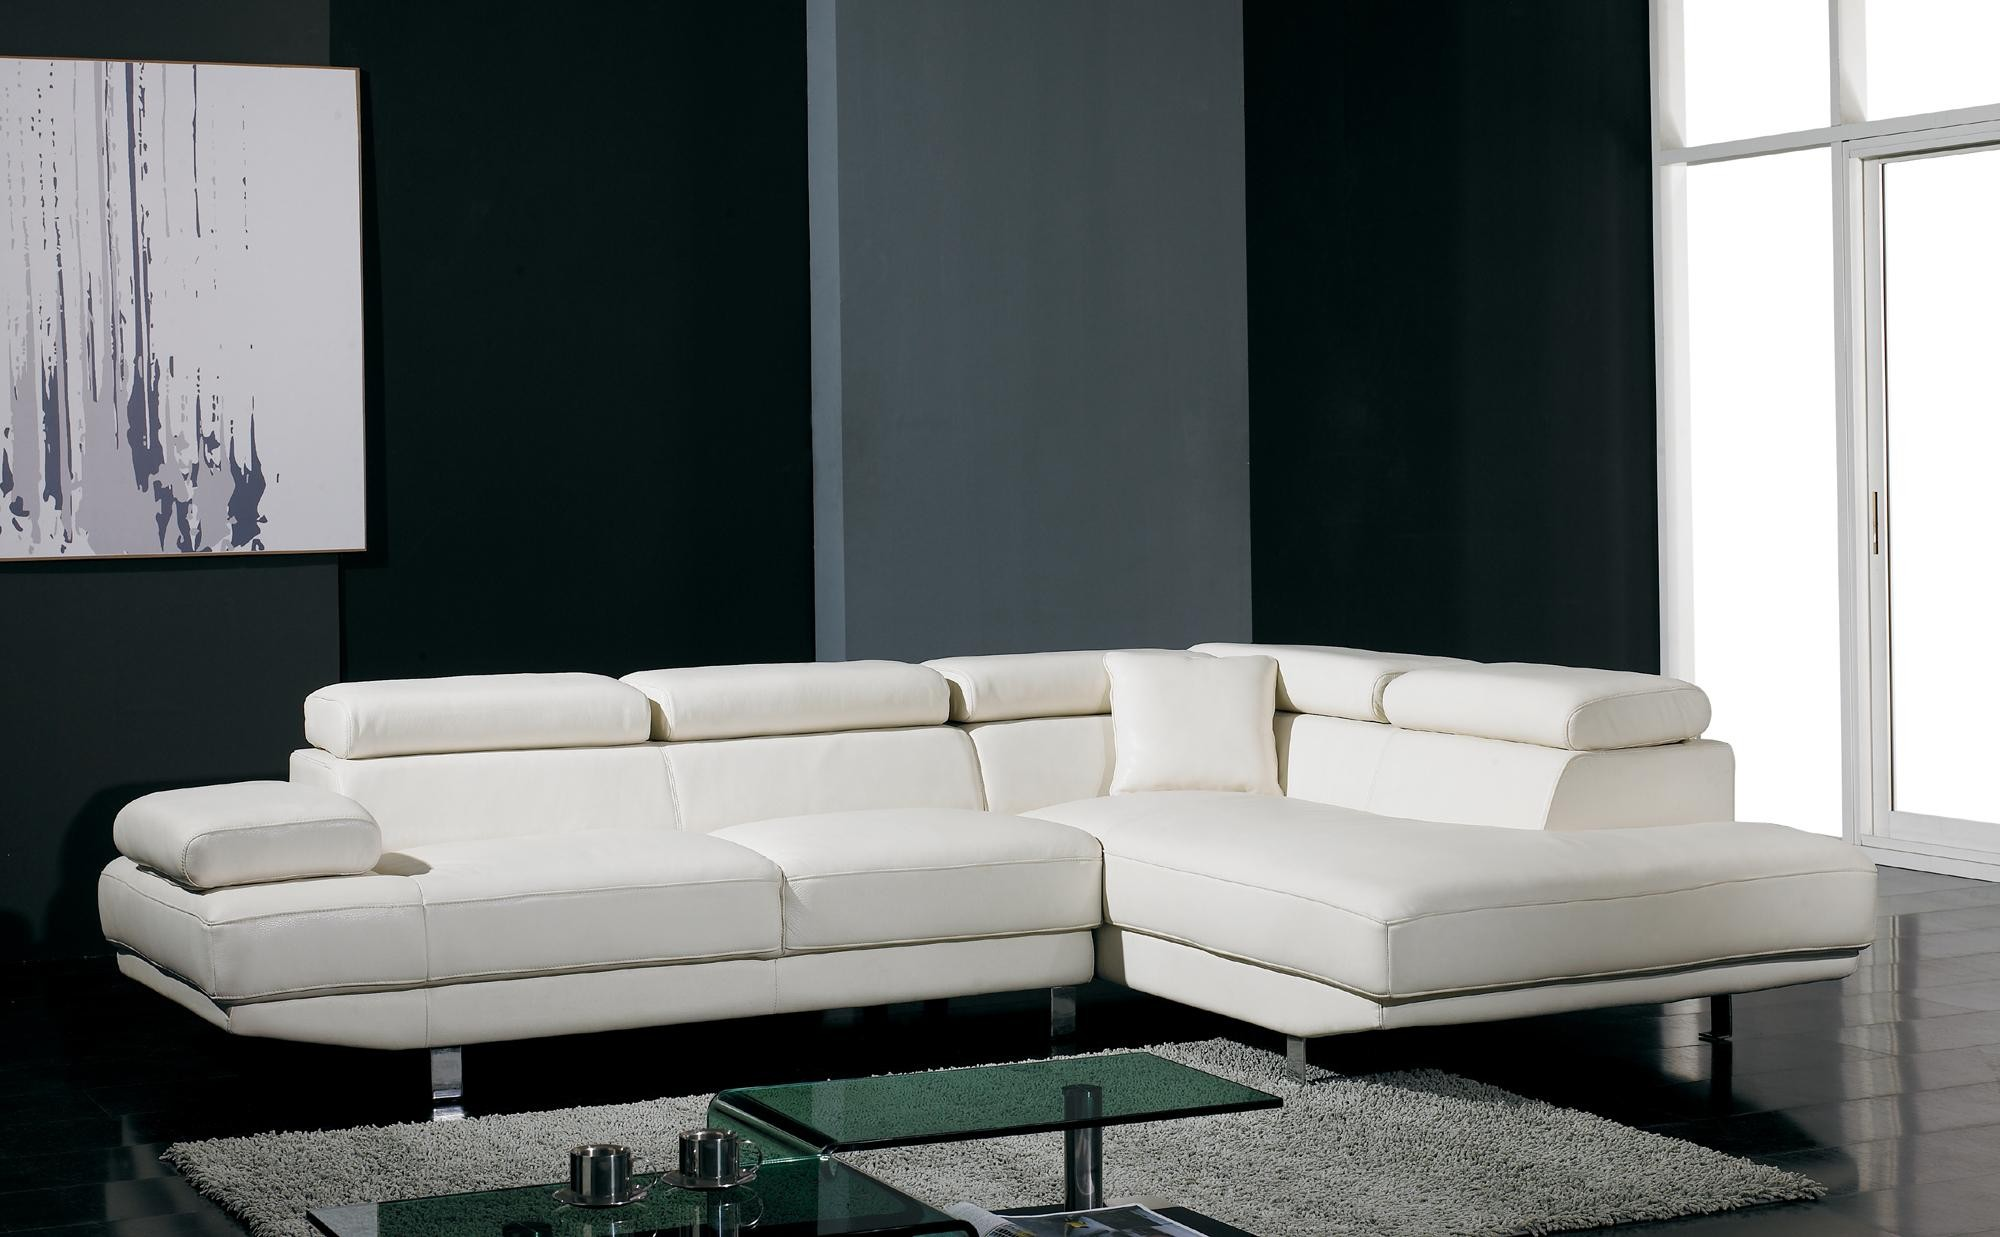 T60 White Bonded Leather Sectional Sofa Set from NOVA